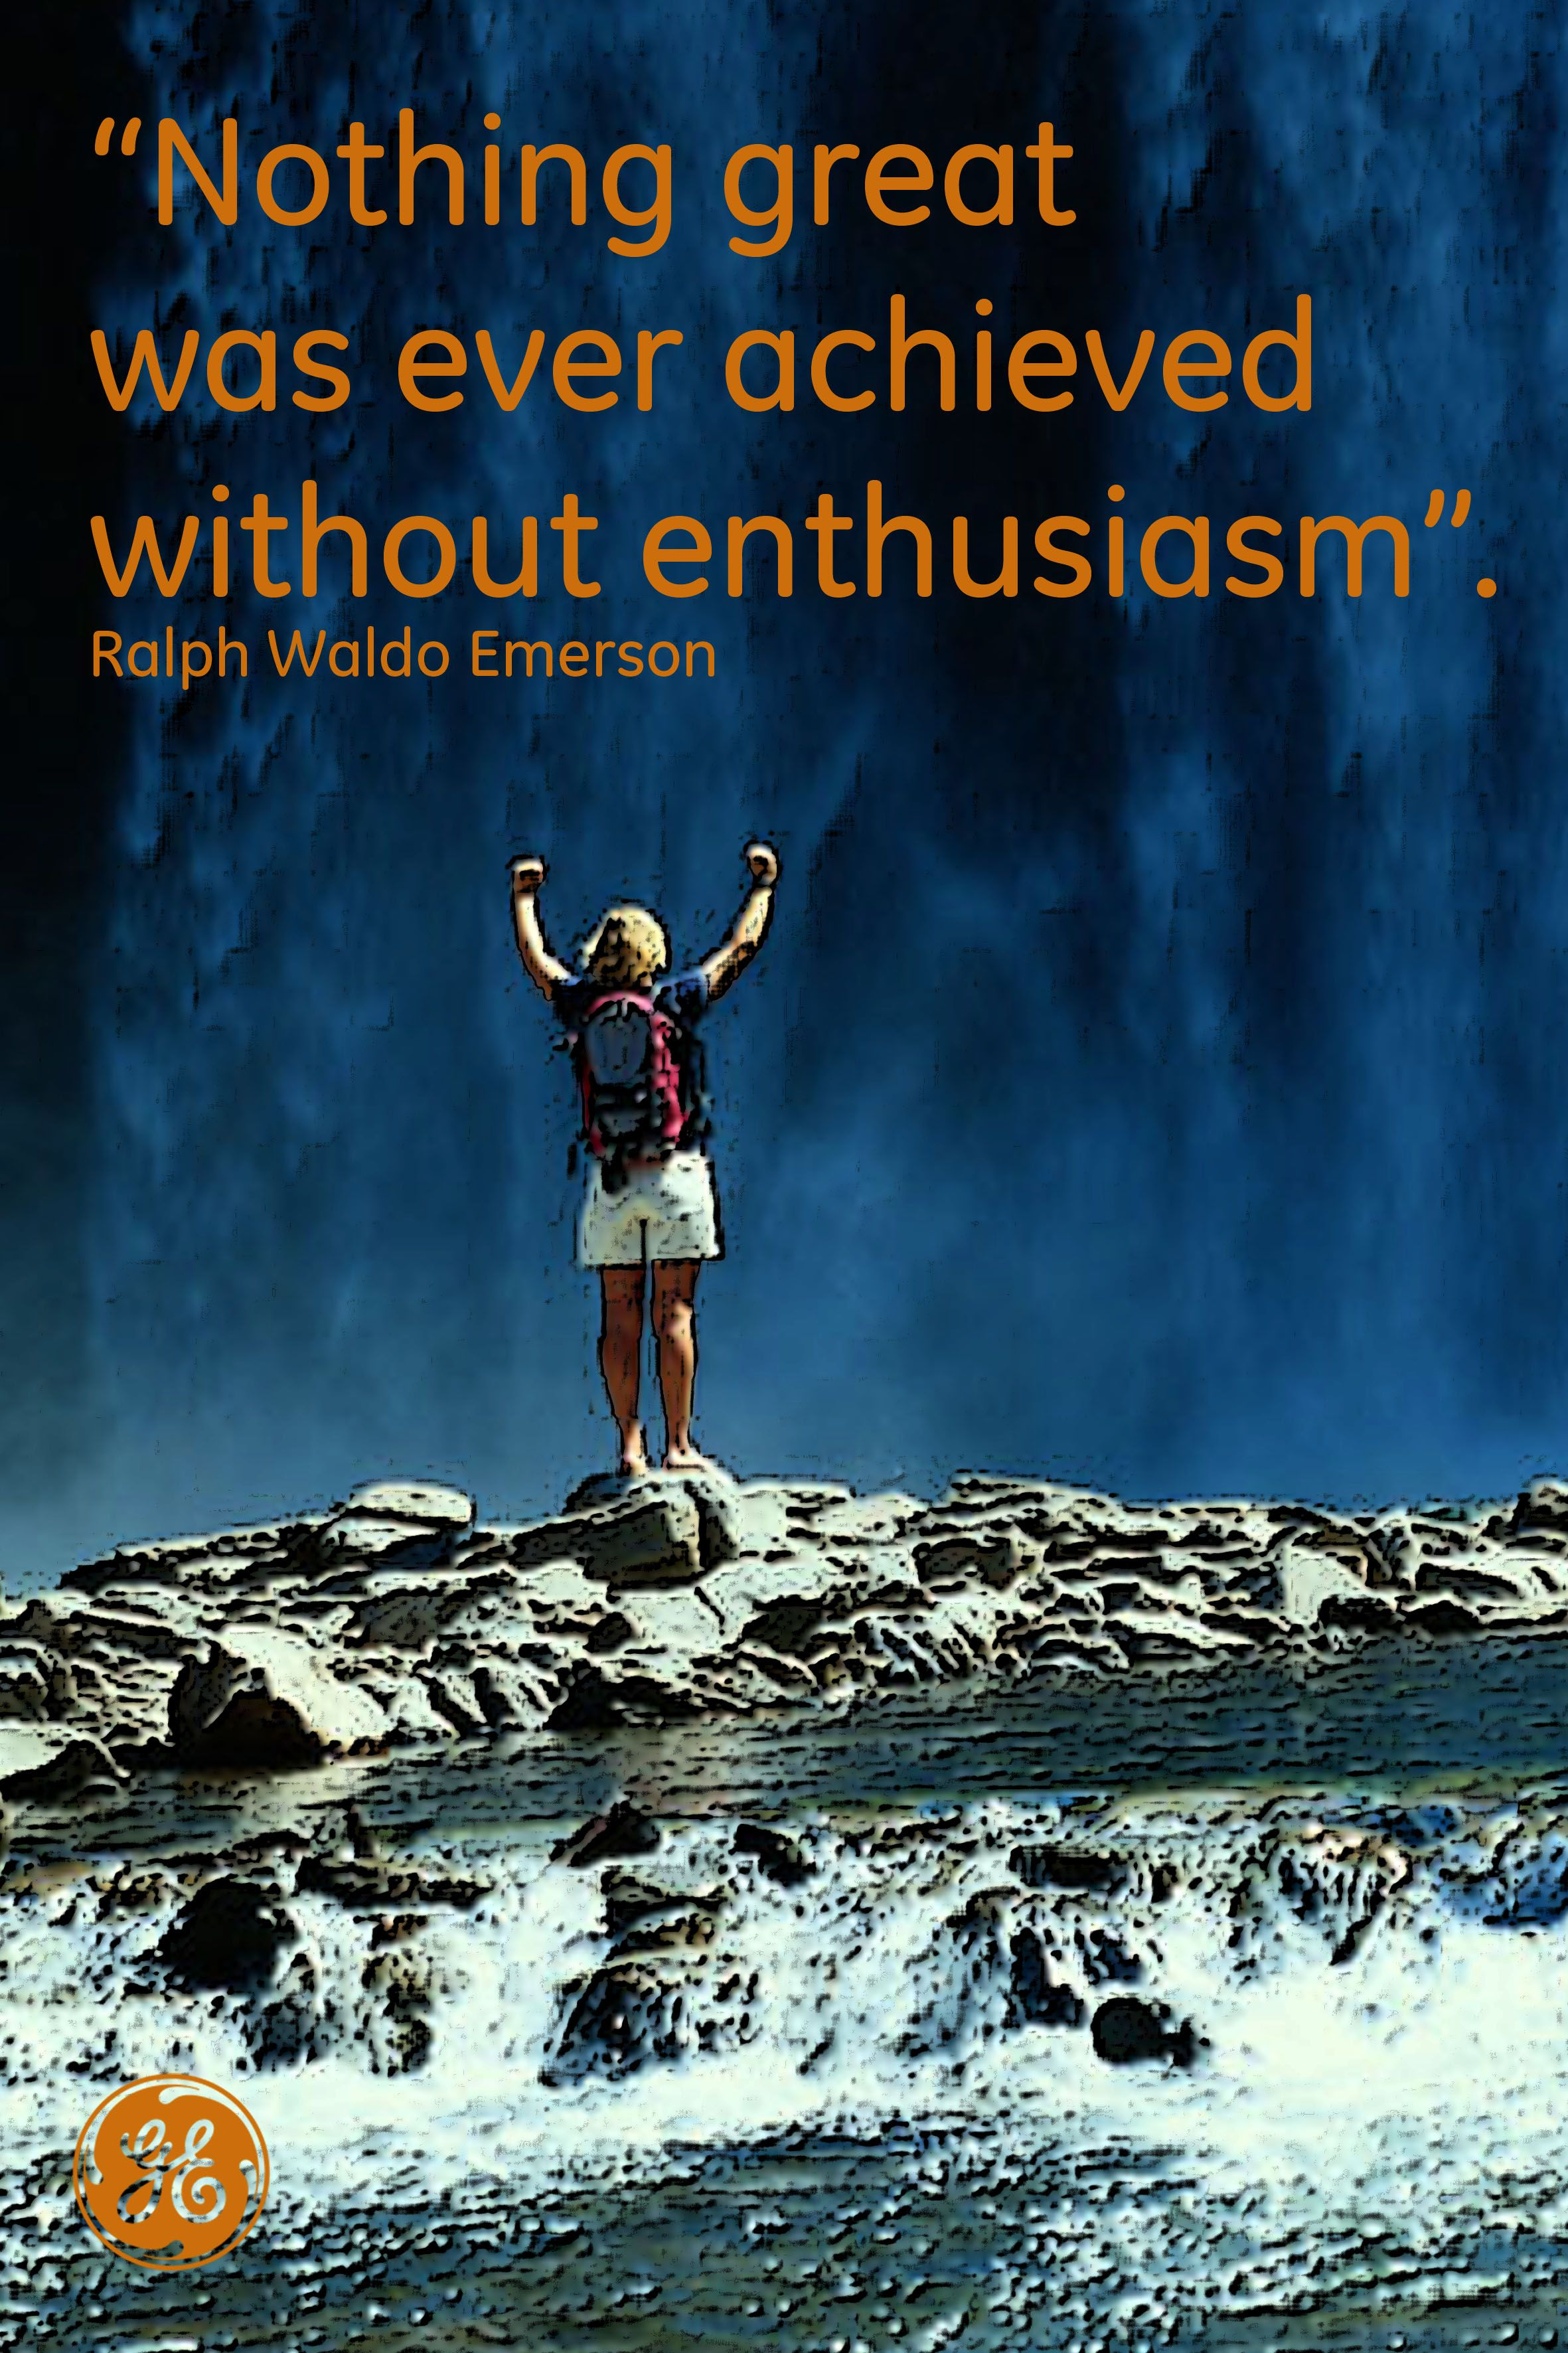 Spiritual Uplifting Quotes Nothing Great Was Ever Achieved Without Enthusiasm Gehealthcare